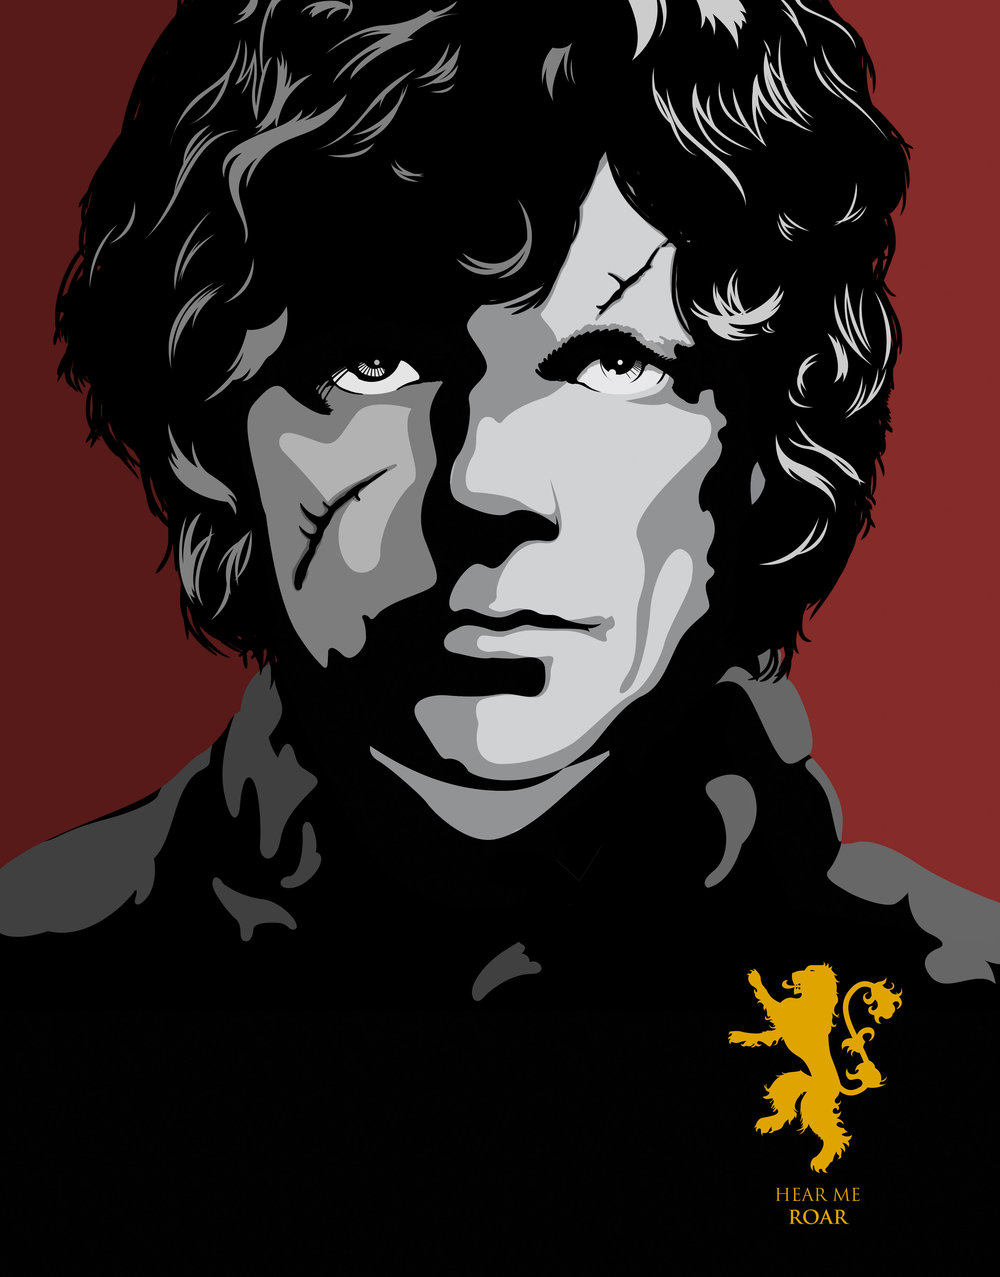 Tyrion Lannister - Never forget what you are, for surely the world will not. Make it your strength. Then it can never be your weakness. Armour yourself in it, and it will never be used to hurt you.